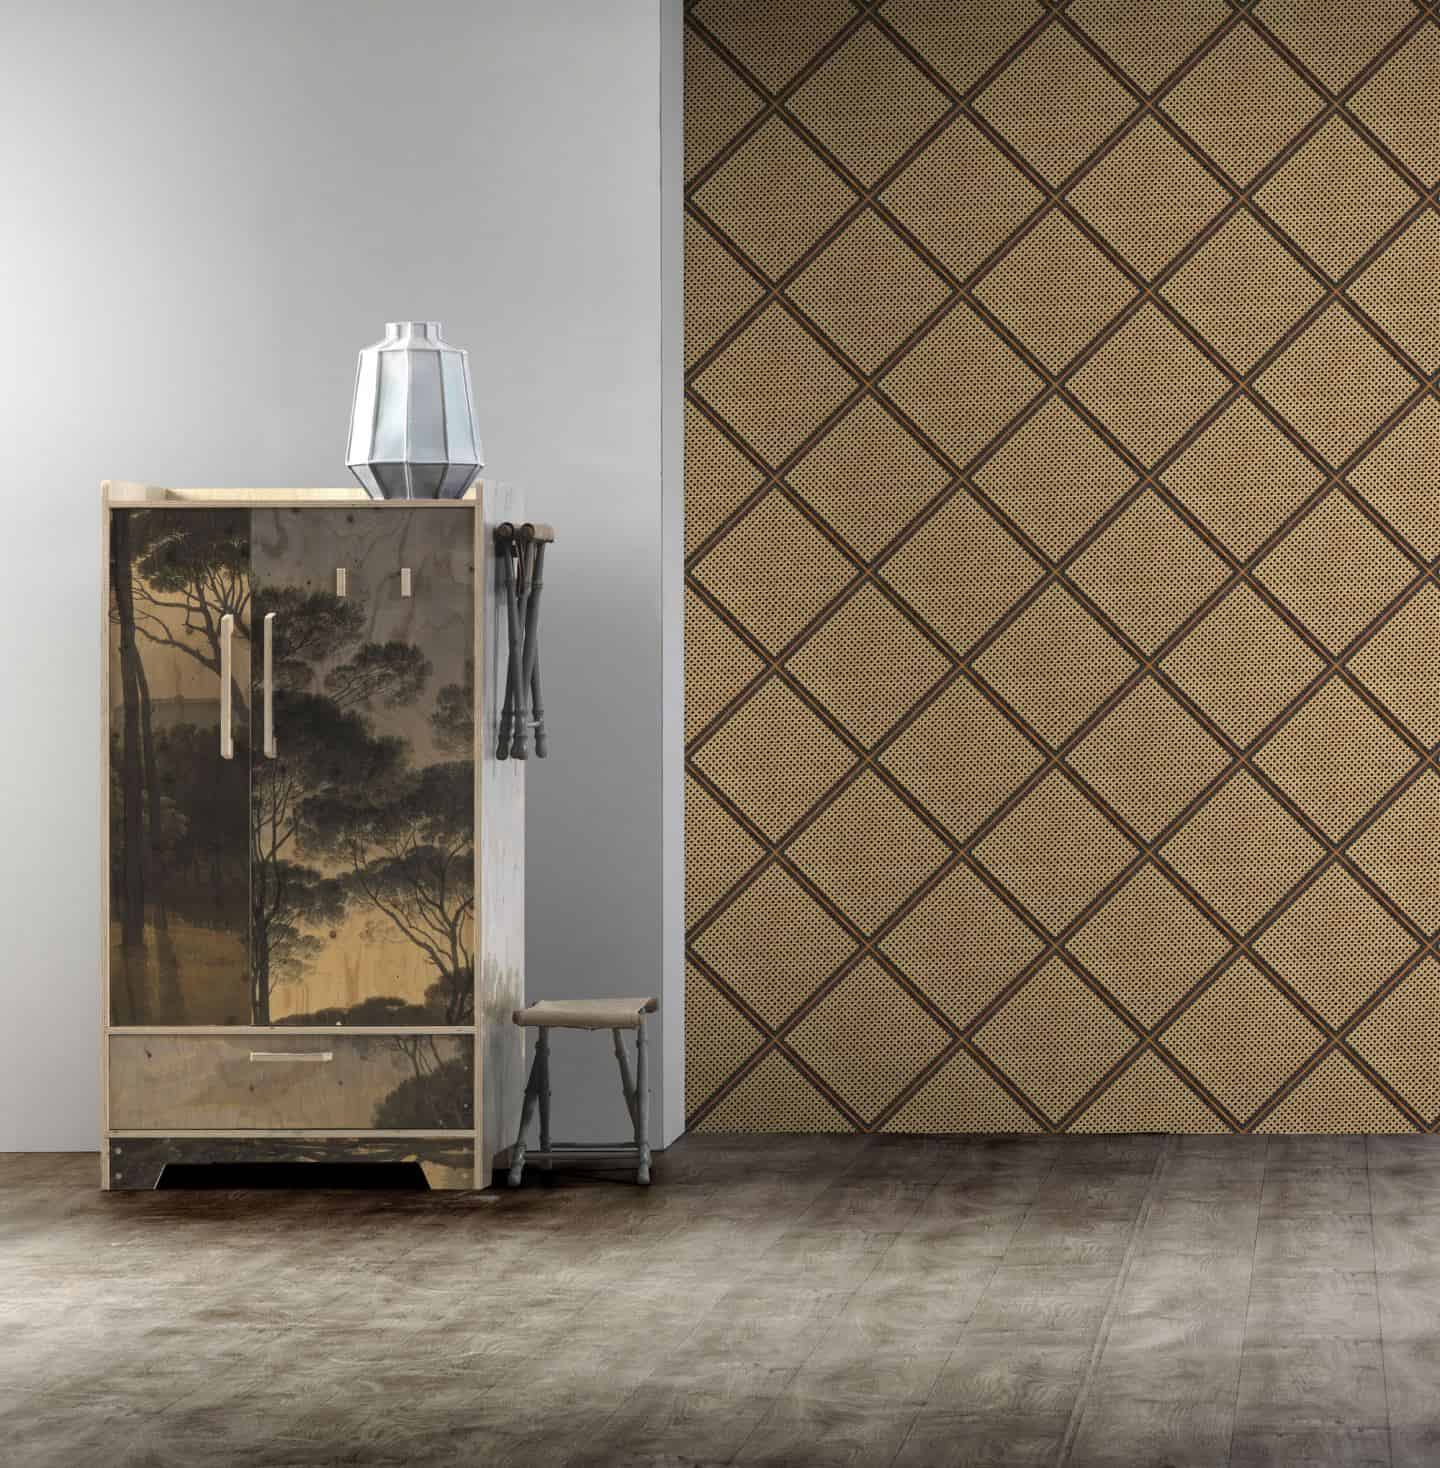 Diamond Cane Webbing Wallpaper from NLXL creates a statement wall